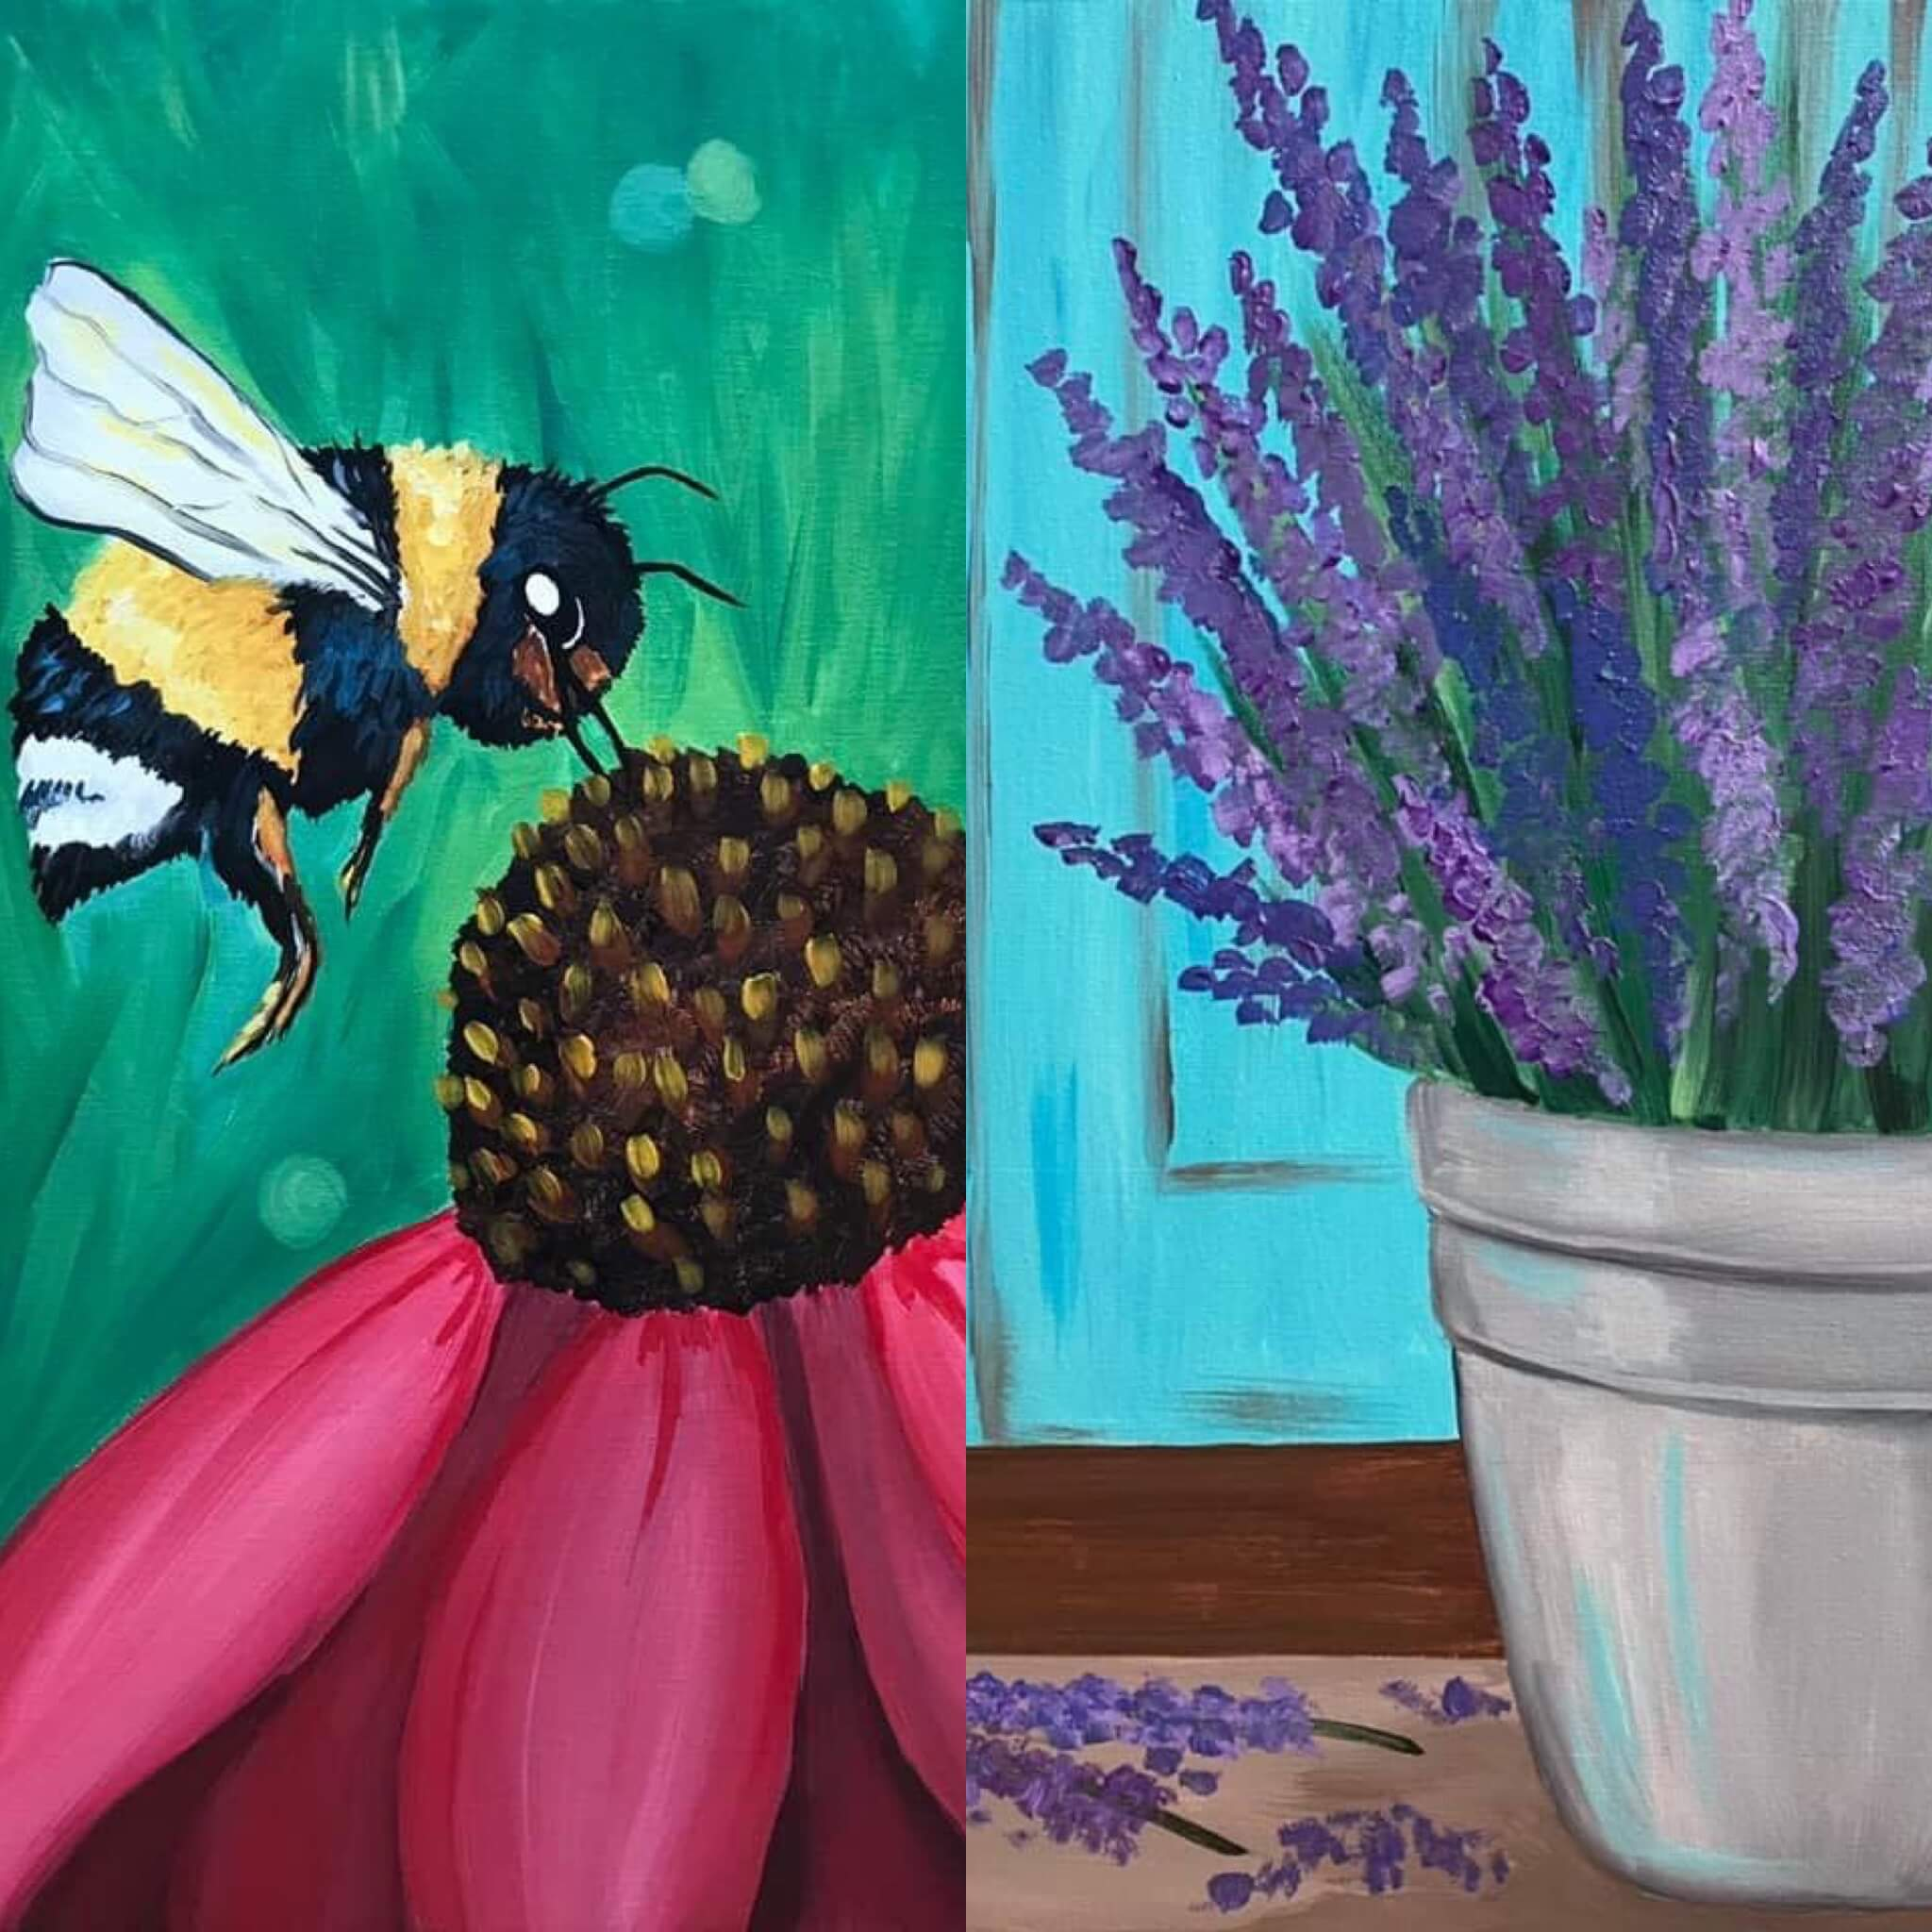 A Thirst For Art at DC Lavender Farm {Lavender or Bumble Bee}